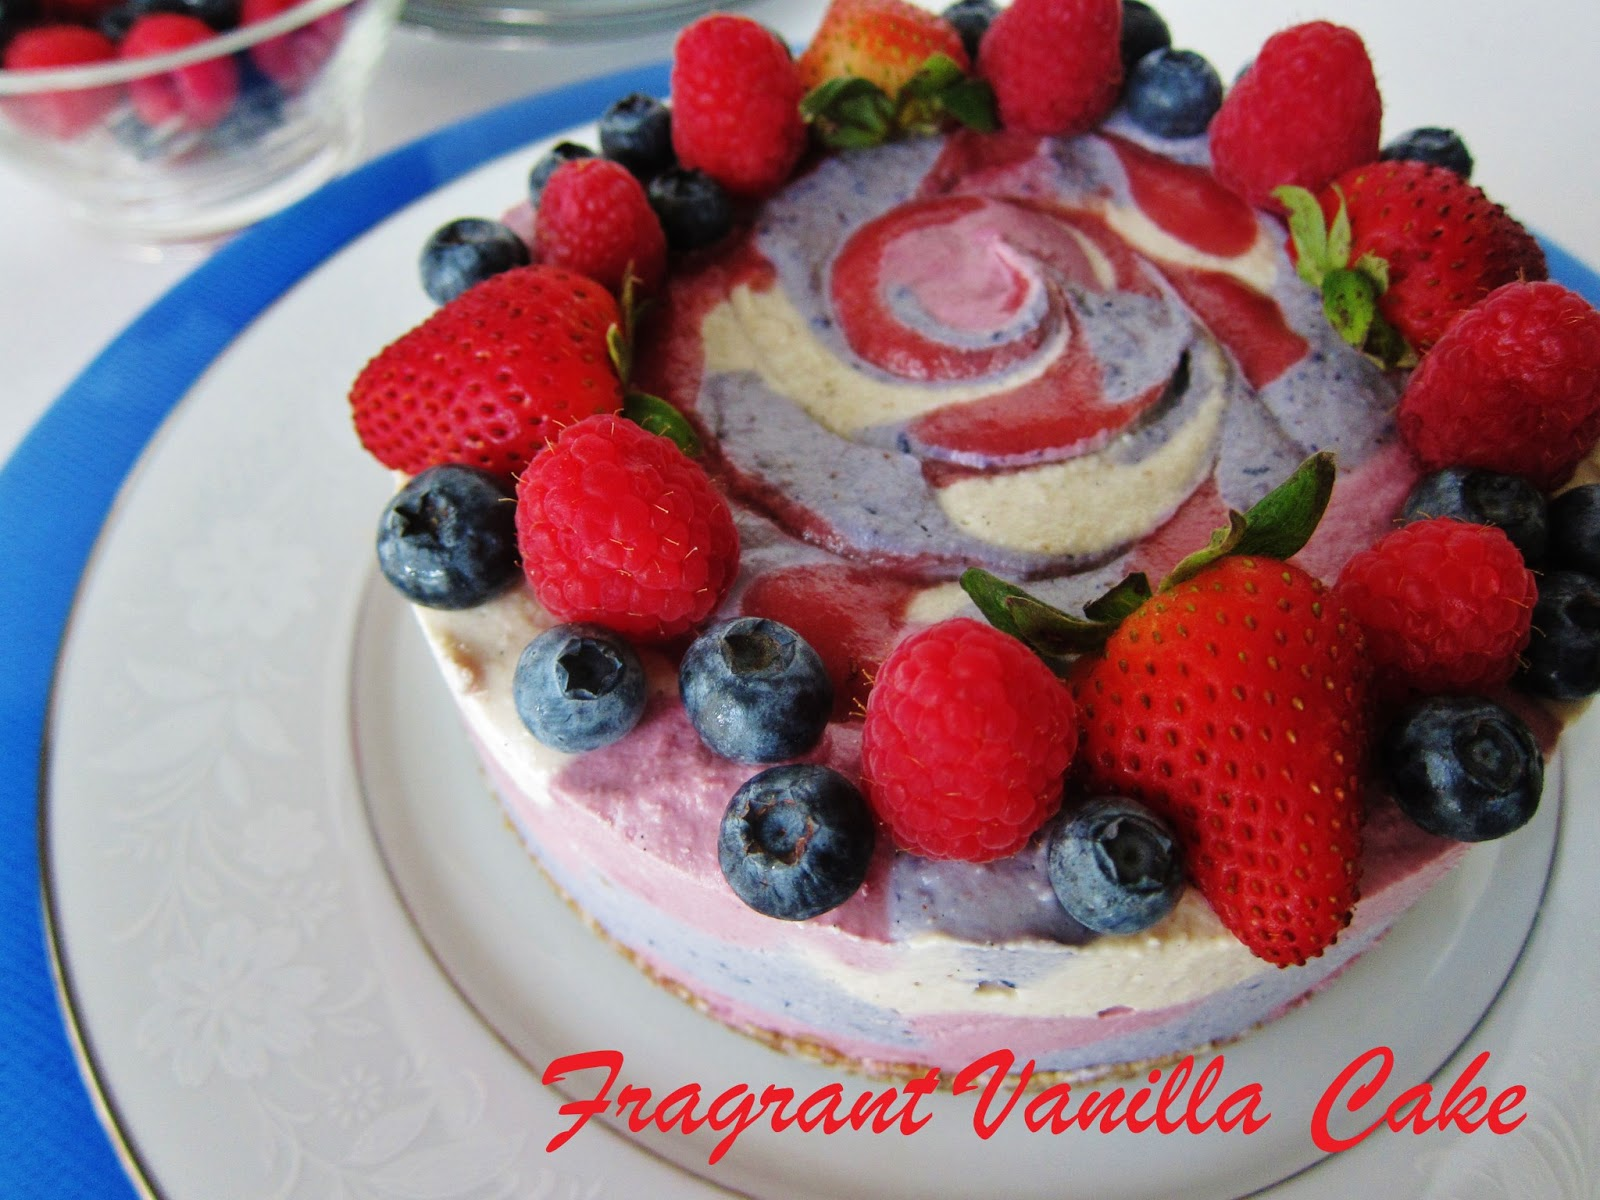 Fragrant Vanilla Cake: Raw Red White and Blue Dream Cake